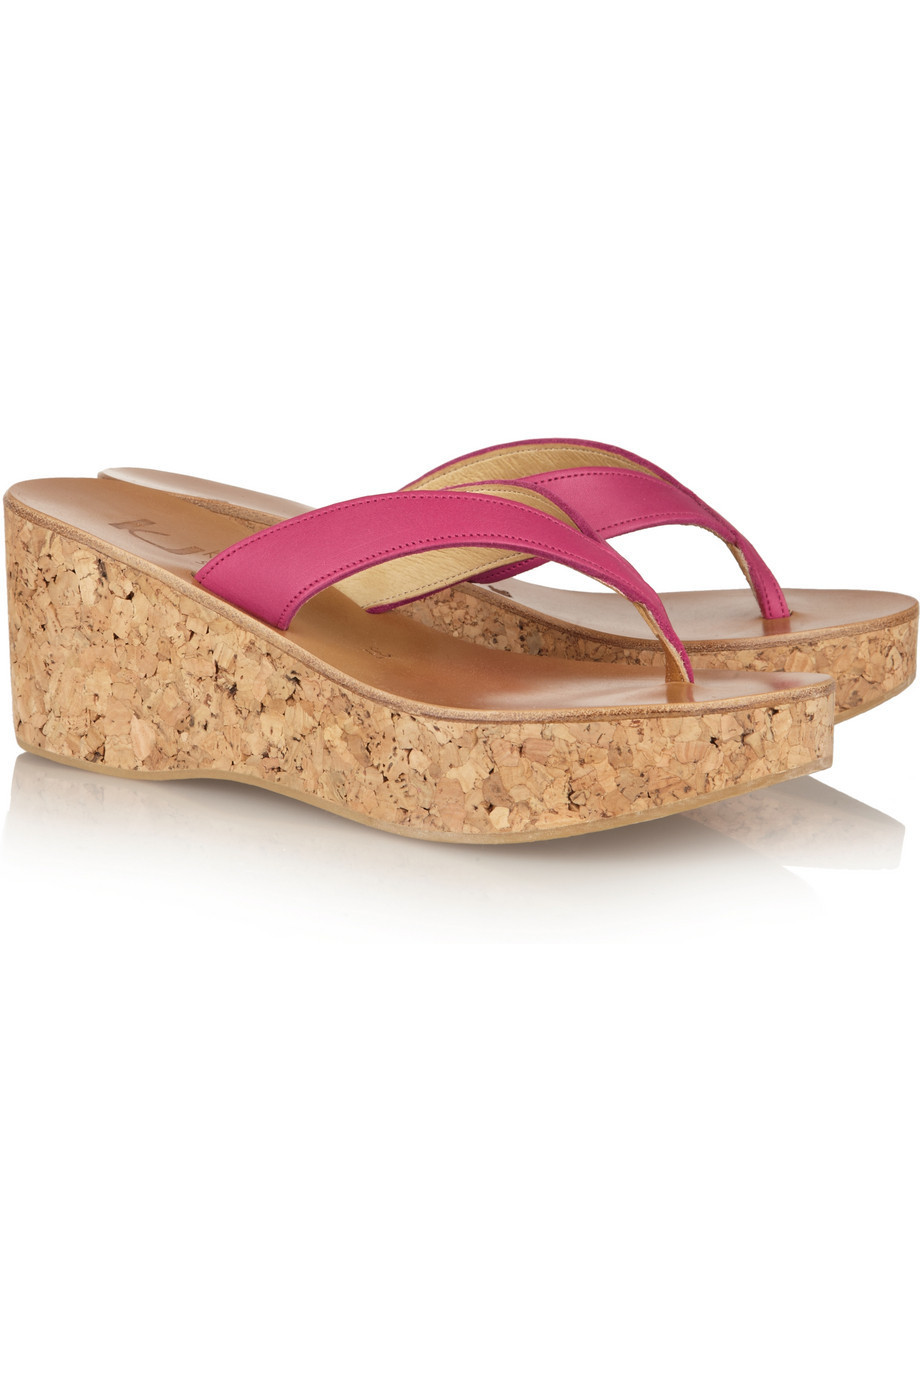 73094dca34226 K JACQUES ST TROPEZ Diorite leather and cork wedge sandals